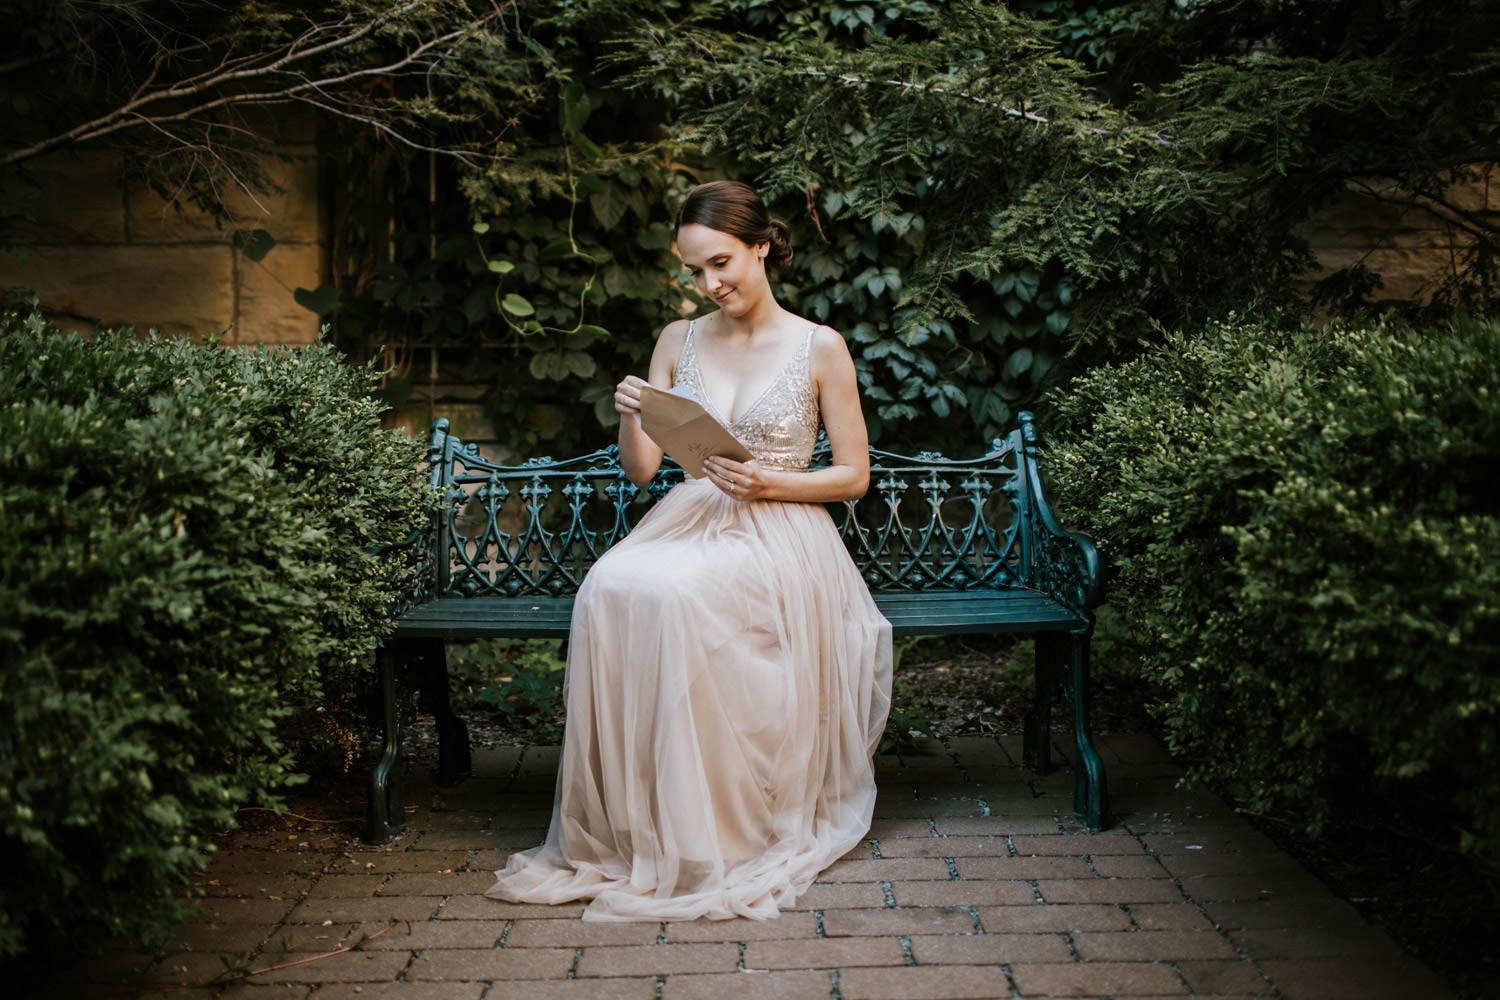 Bride reading a letter from the groom at Saint Ignatius wedding. Photographed by Mark Trela photography.